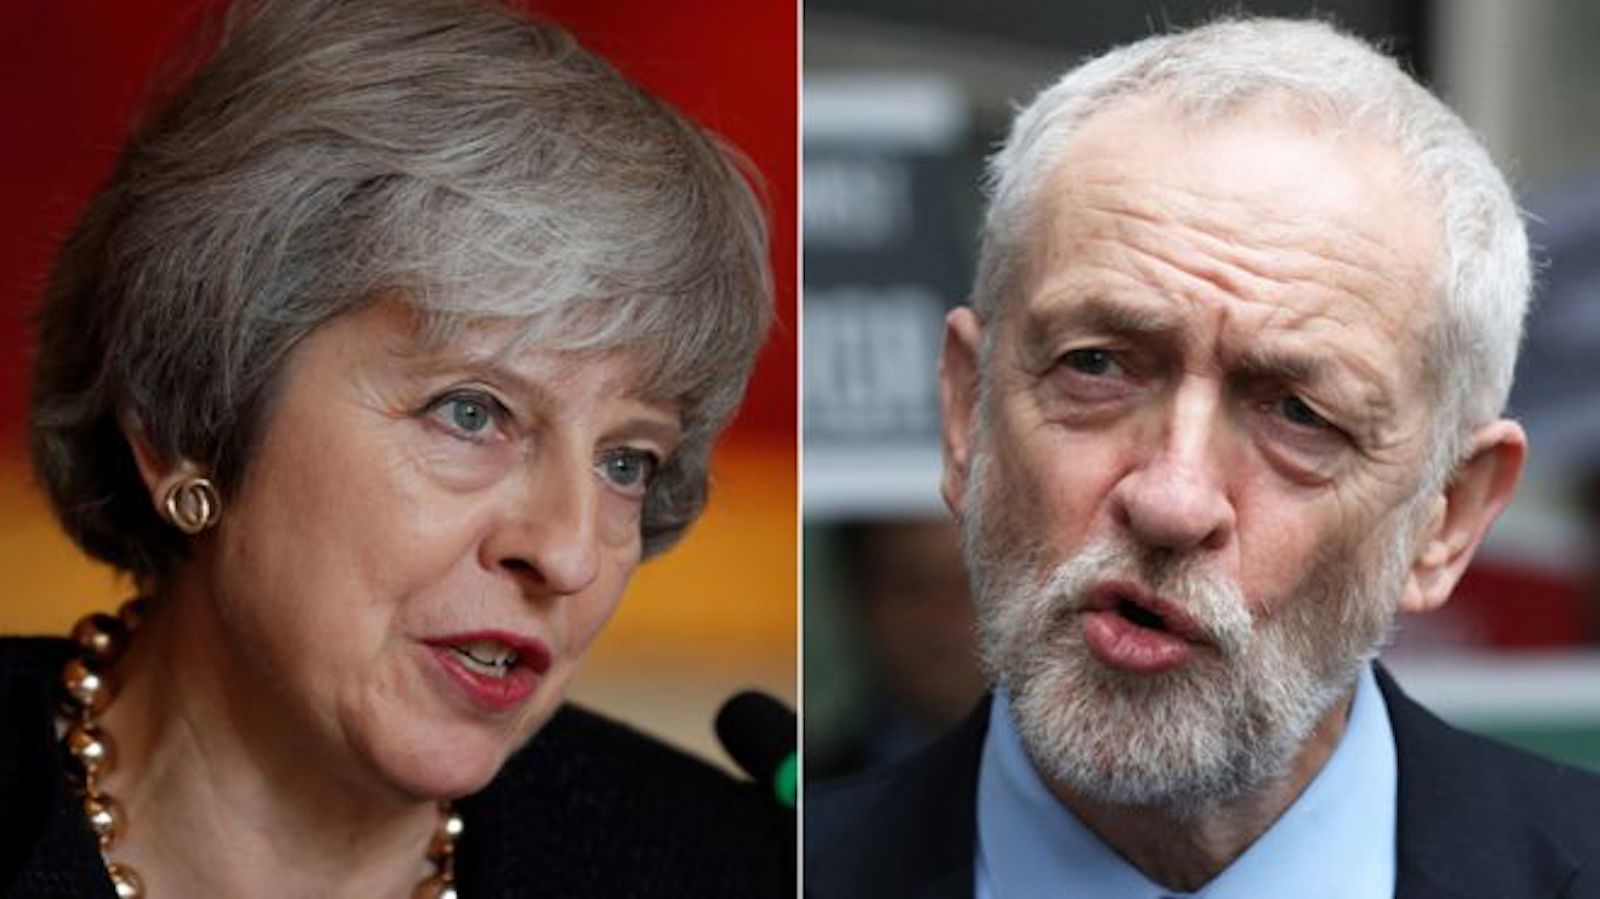 Brexit: I had no choice but to approach Labour – May